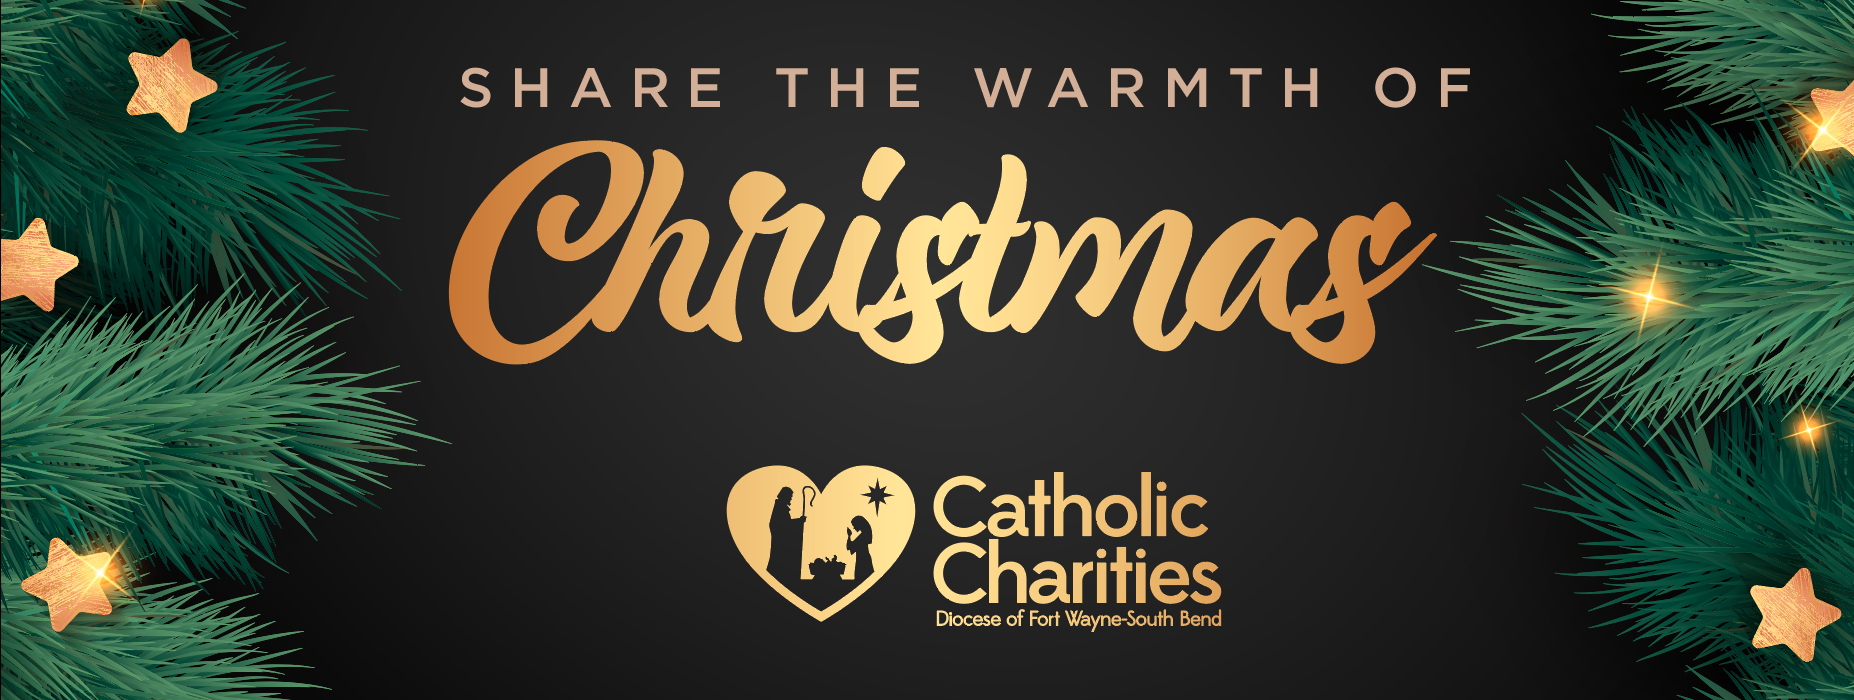 Catholic Charities launches Share the Warmth of Christmas Appeal